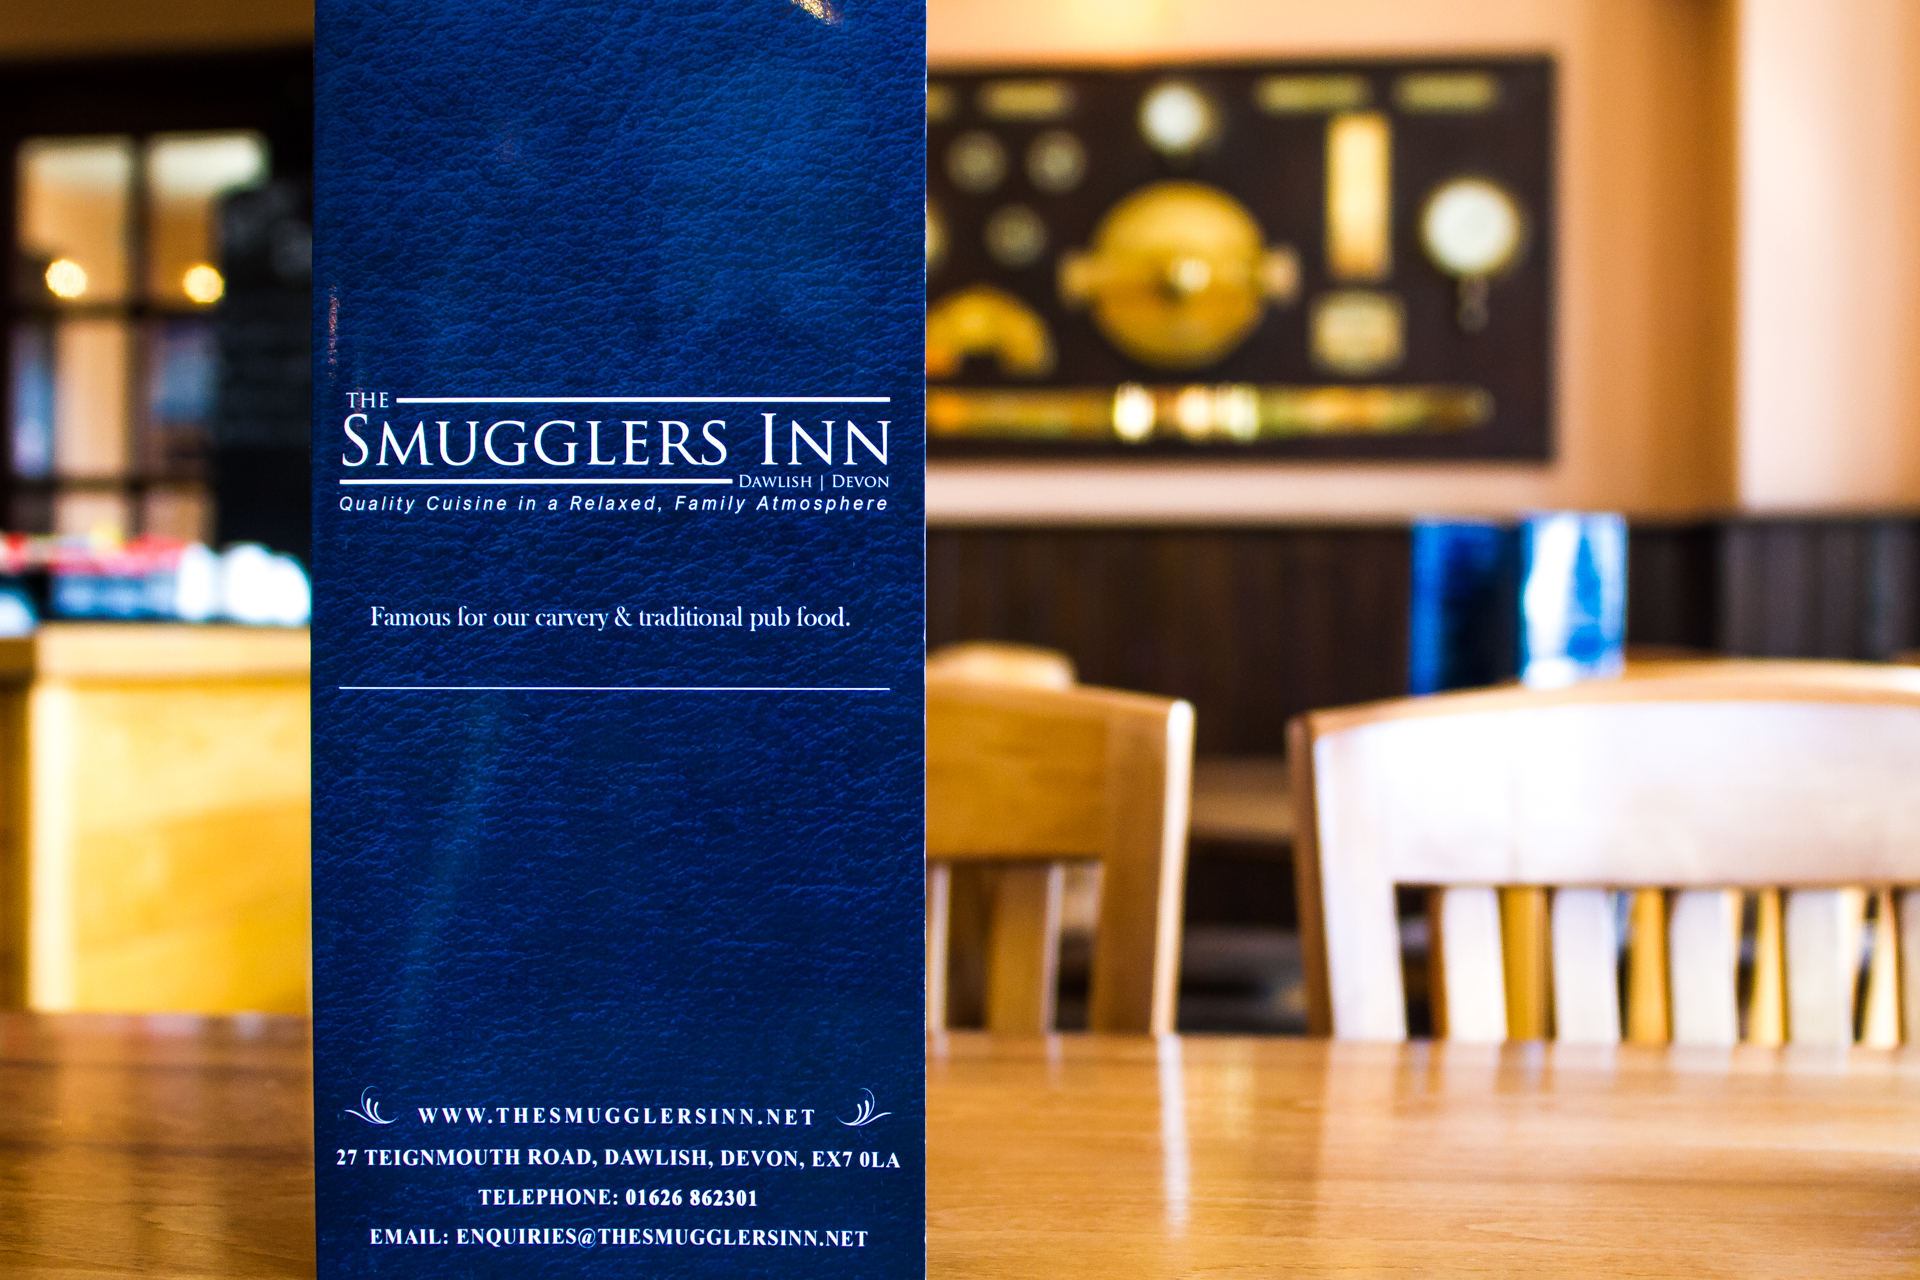 View The Smugglers Inn Menu